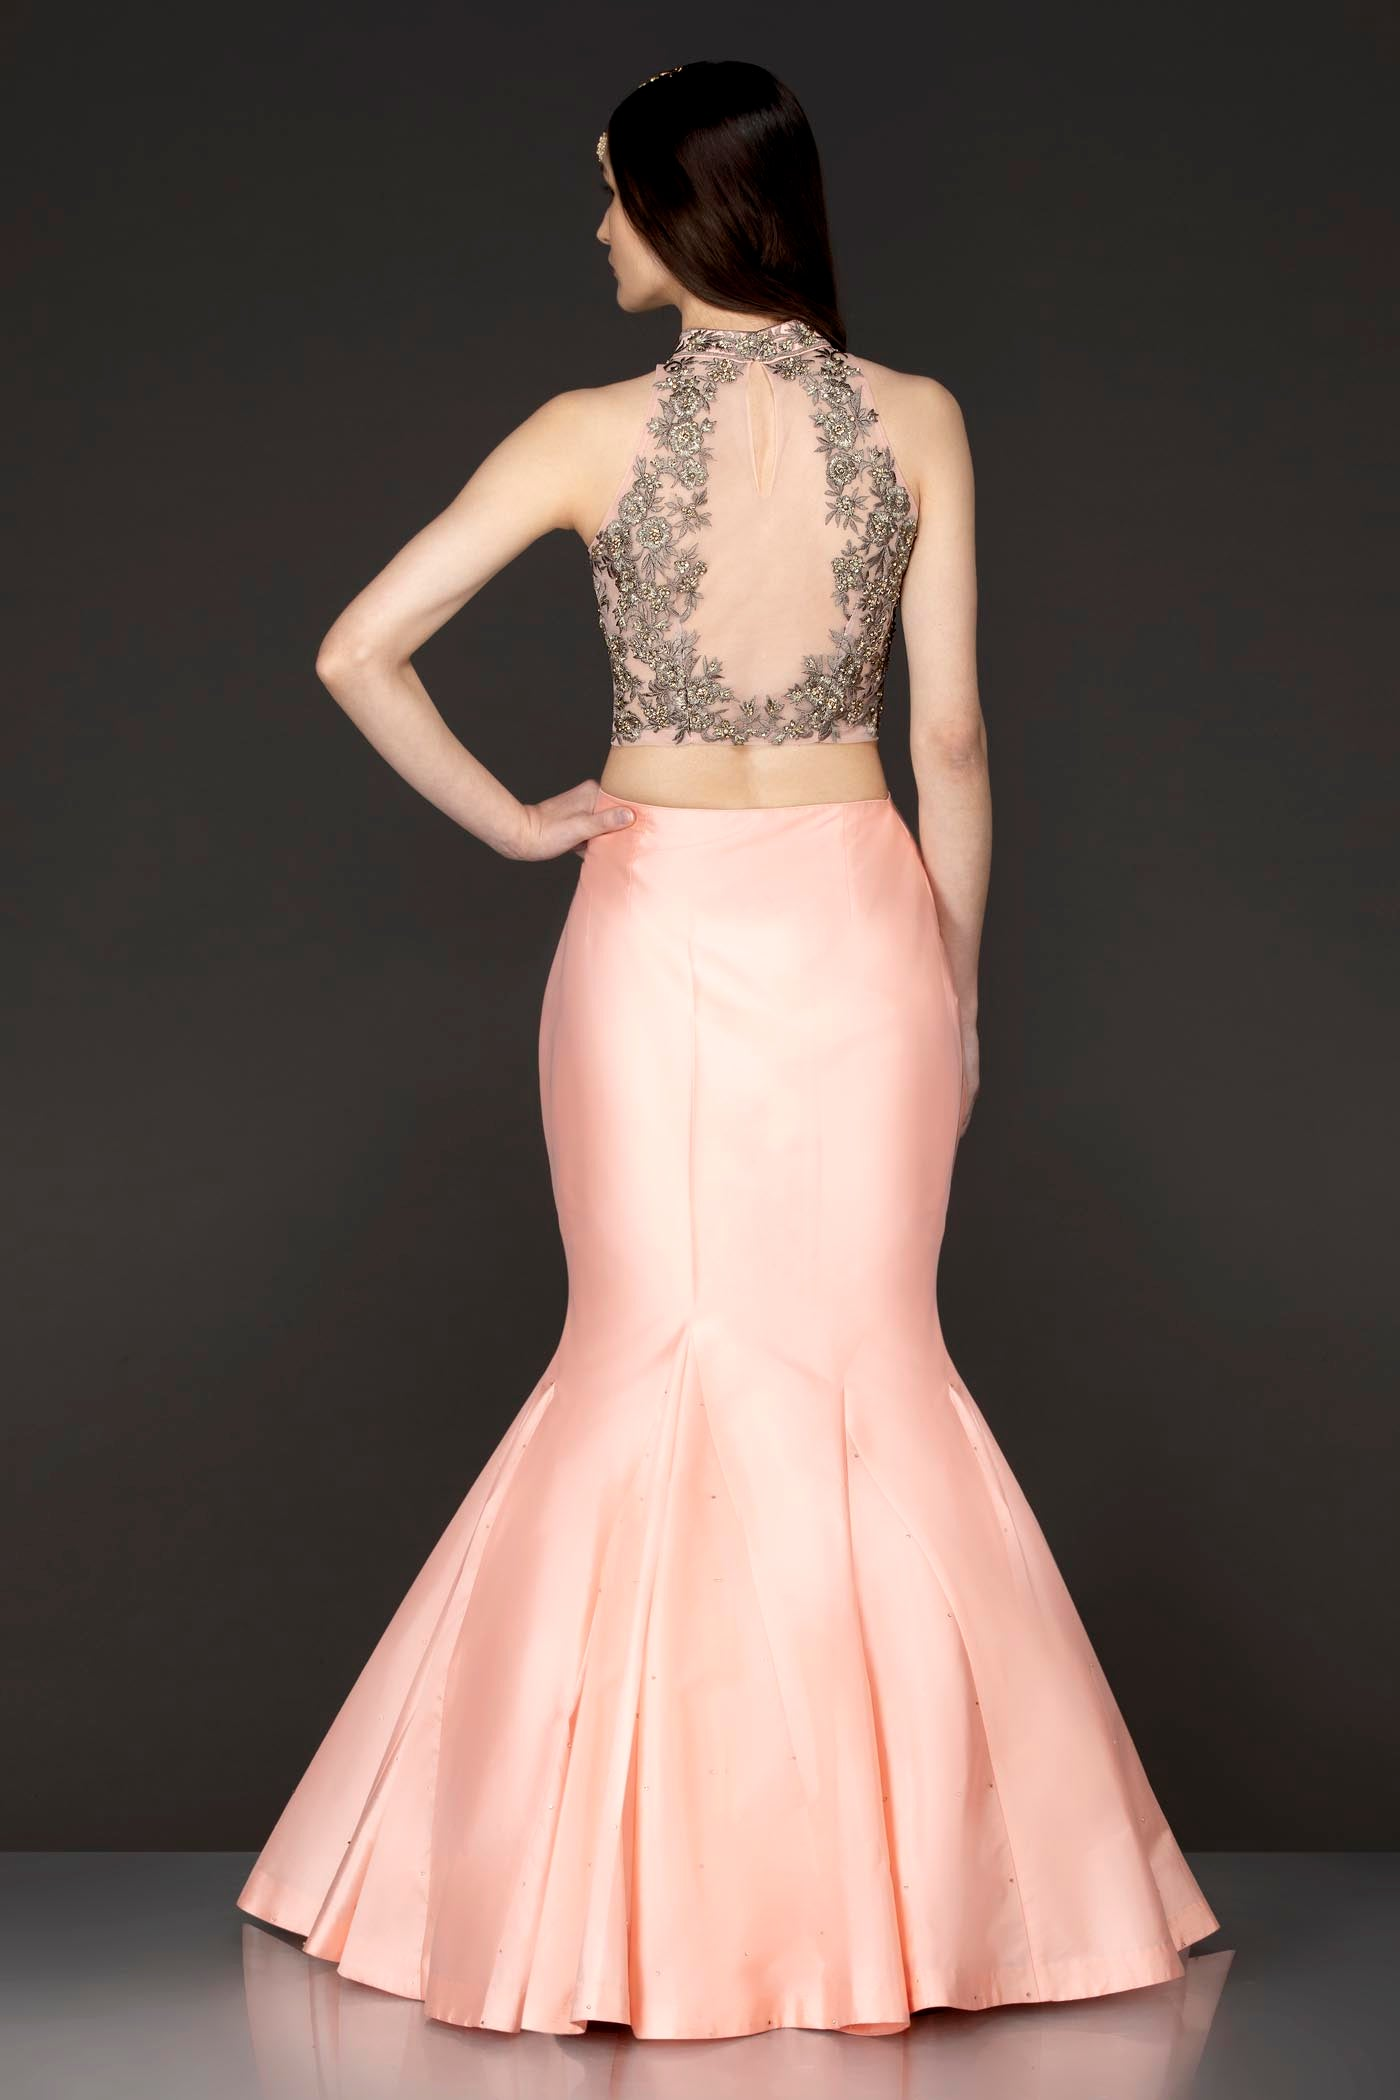 Peach Halter Neck Top With Silk Fish Cut Silk With Box Pleats In The Ghera